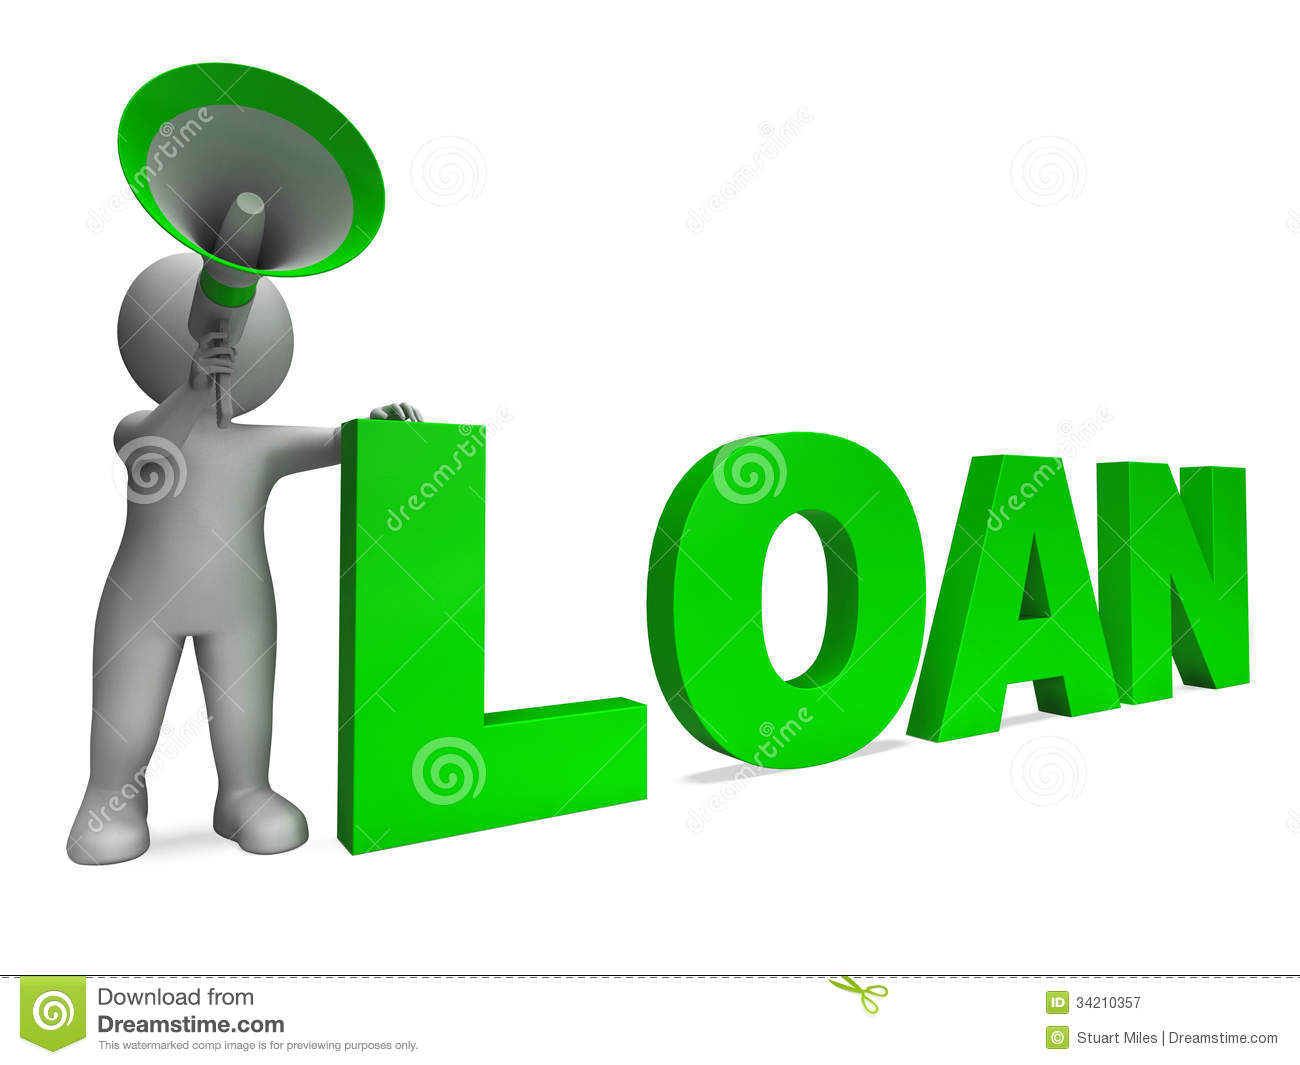 Bank loan clipart clip art black and white library Loan Character Shows Bank Loans Mortgage Royalty Free Stock ... clip art black and white library